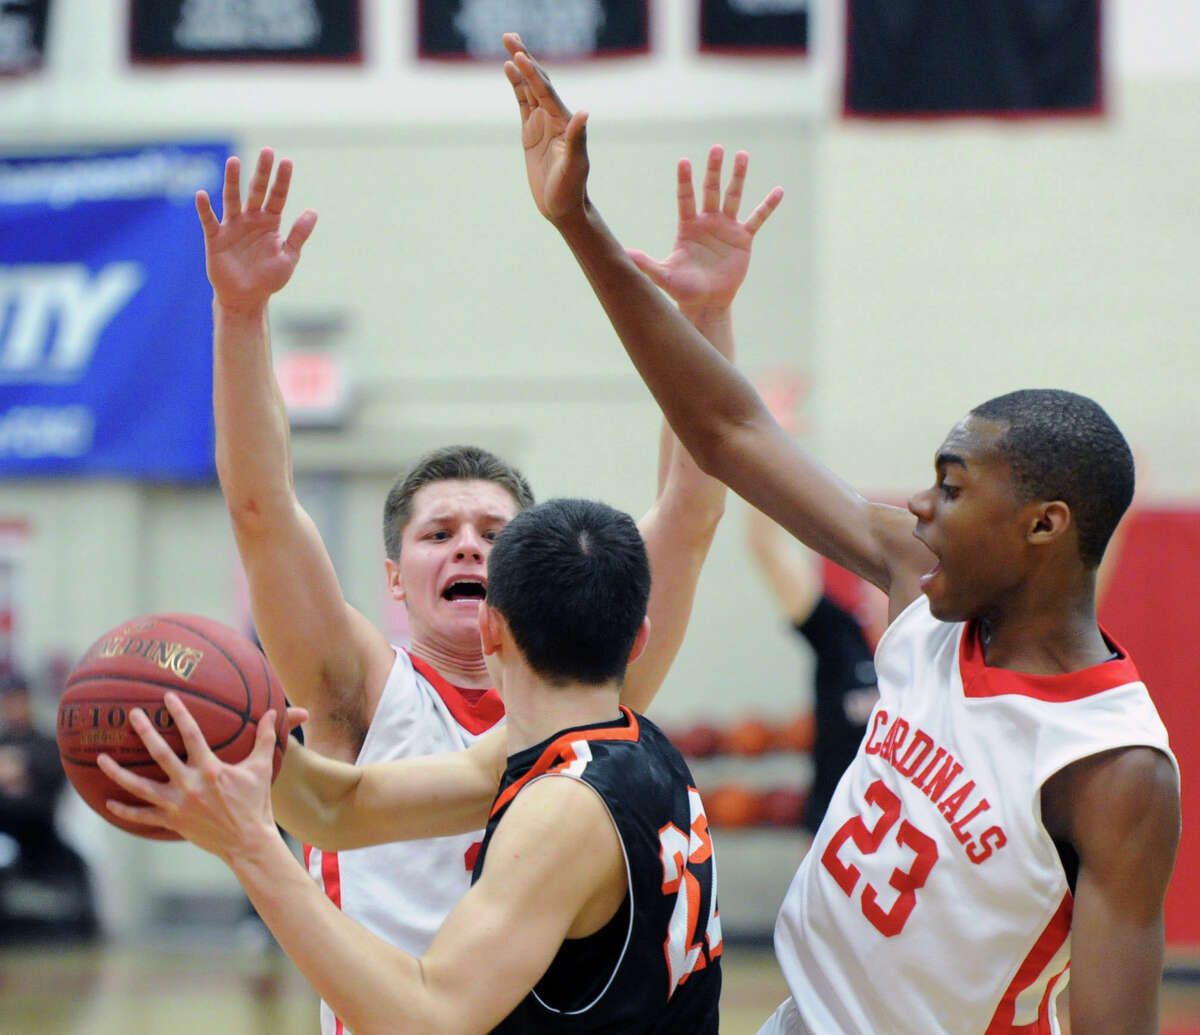 Greenwich defenders, Tommy Povinelli, left, and Leonel Hyatt, right, block the passing avenue of Ridgefield's Zachary Ward (# 22) during the FCIAC boys basketball semfinal game between Greenwich High School vs. Ridgefield High School at Fairfield Warde High School, Fairfield, Conn., Tuesday, March 4, 2014. Greenwich defeated Ridgefield, 65-54, and advances to the final that will be played at Fairfield Warde High School Thursday, March 6, at 7 p.m.